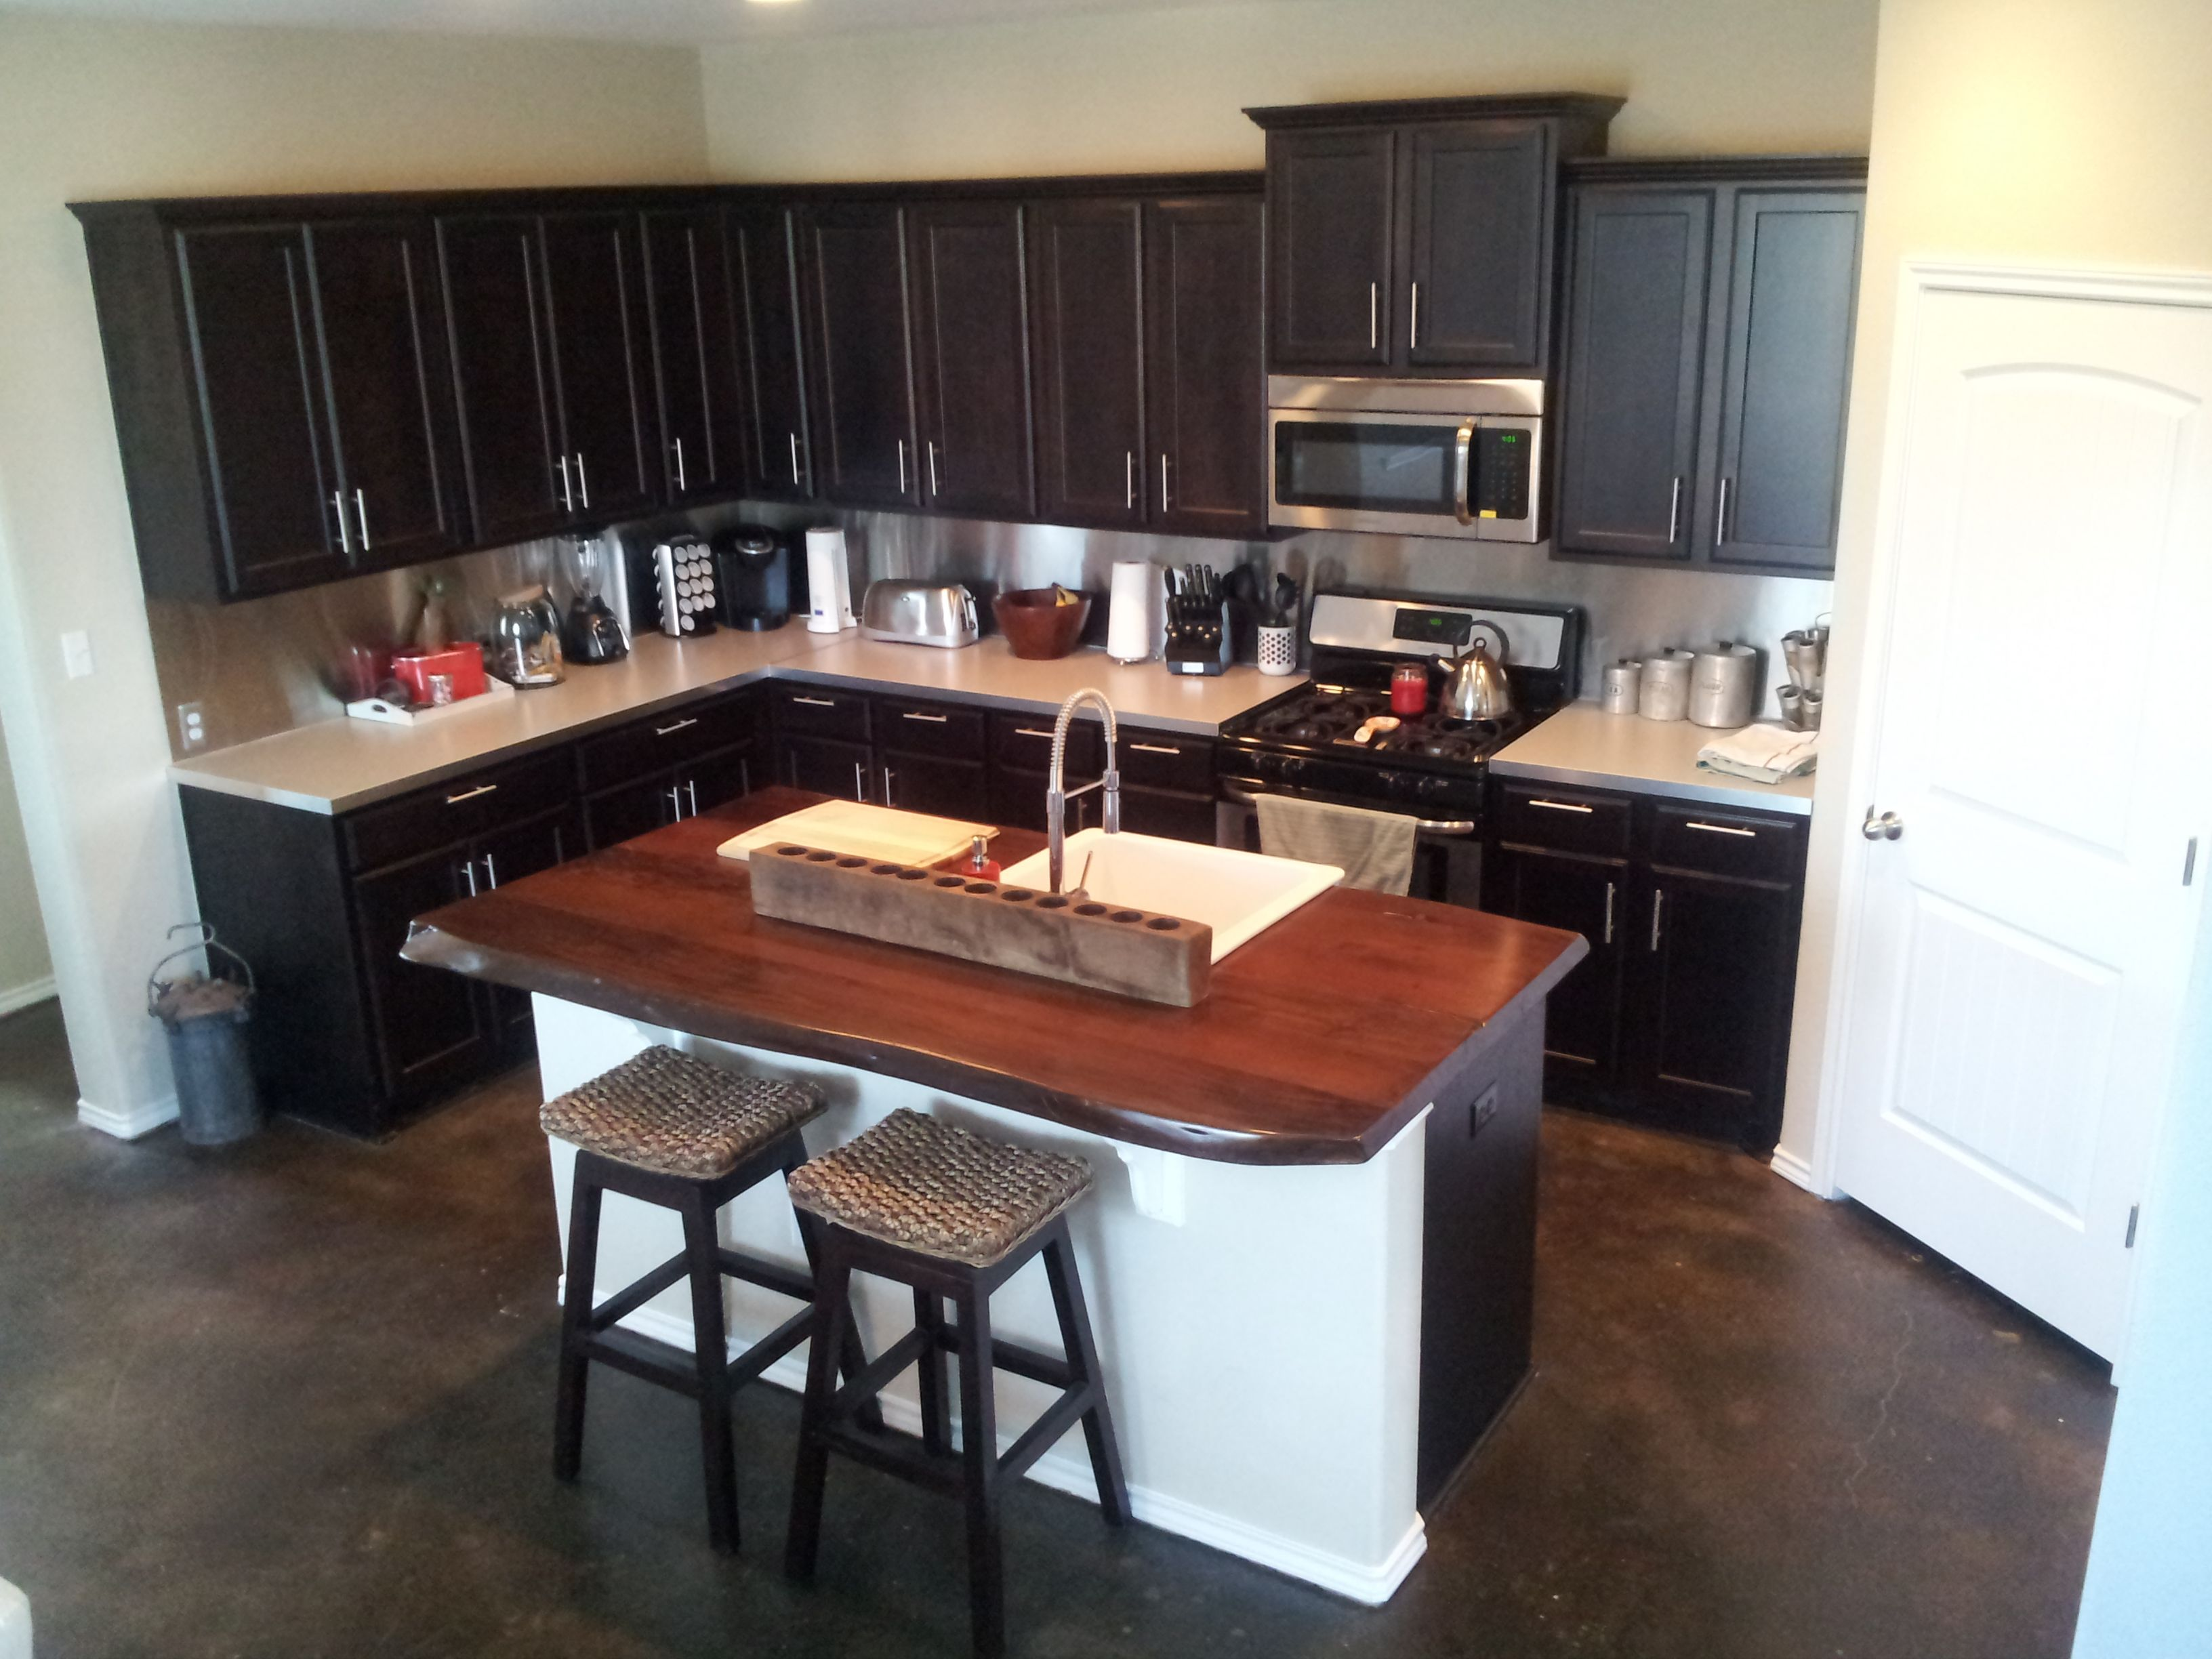 Inexpensive stainless steel backsplash for the home for Inexpensive backsplash for kitchen